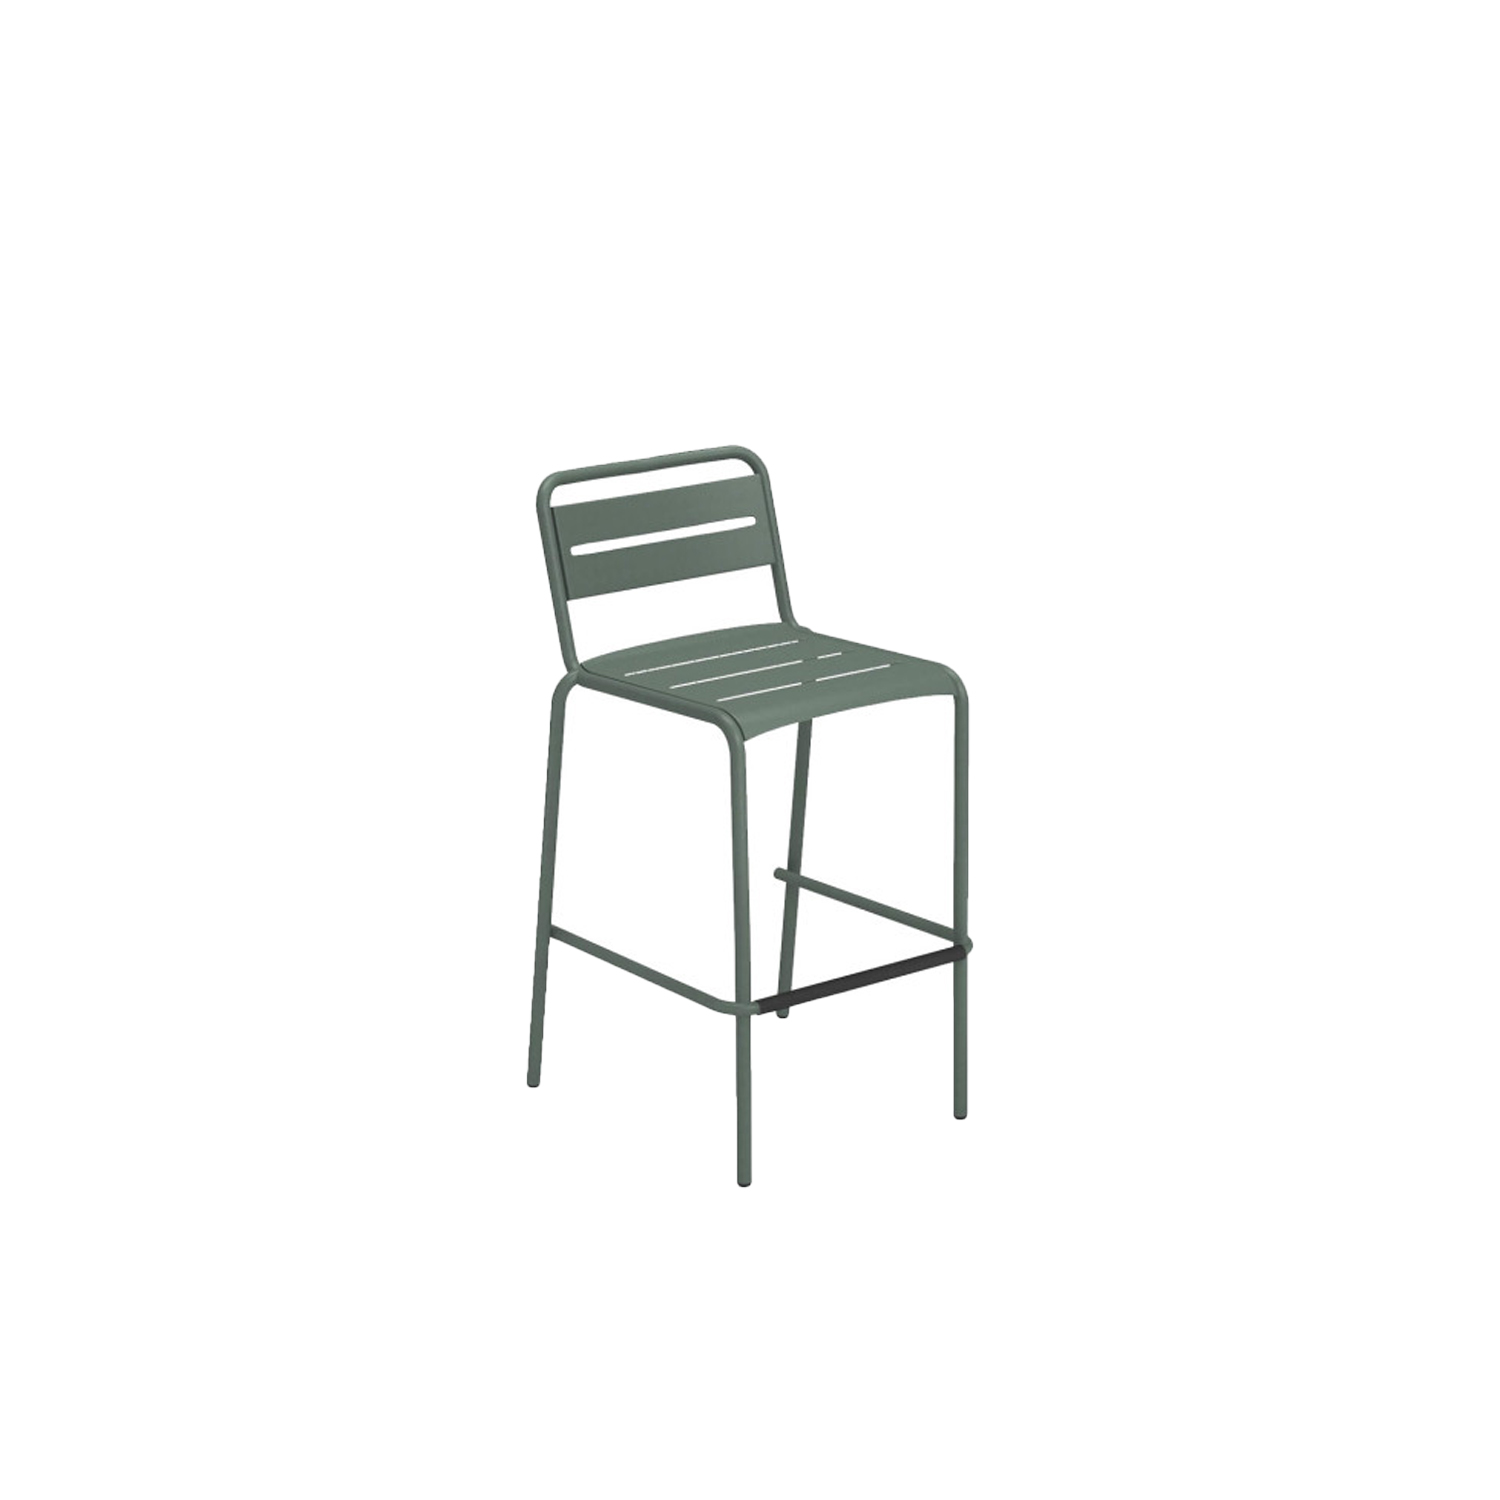 Star Barstool - Set of 4 - This set of 4 barstools is perfect for outdoor bars. They are available in a wide array of colours so that you can choose the best one to suit your space. The Star collection is a series of chairs and tables, the Star collection is an evergreen among EMU products. Simple shapes, colour and versatility mark this collection which is defined by soft, classic lines, ideal in multiple contexts and surroundings. The Star collection comprises chair, armchair, stool, lounge chair, sofa and tables of various sizes.